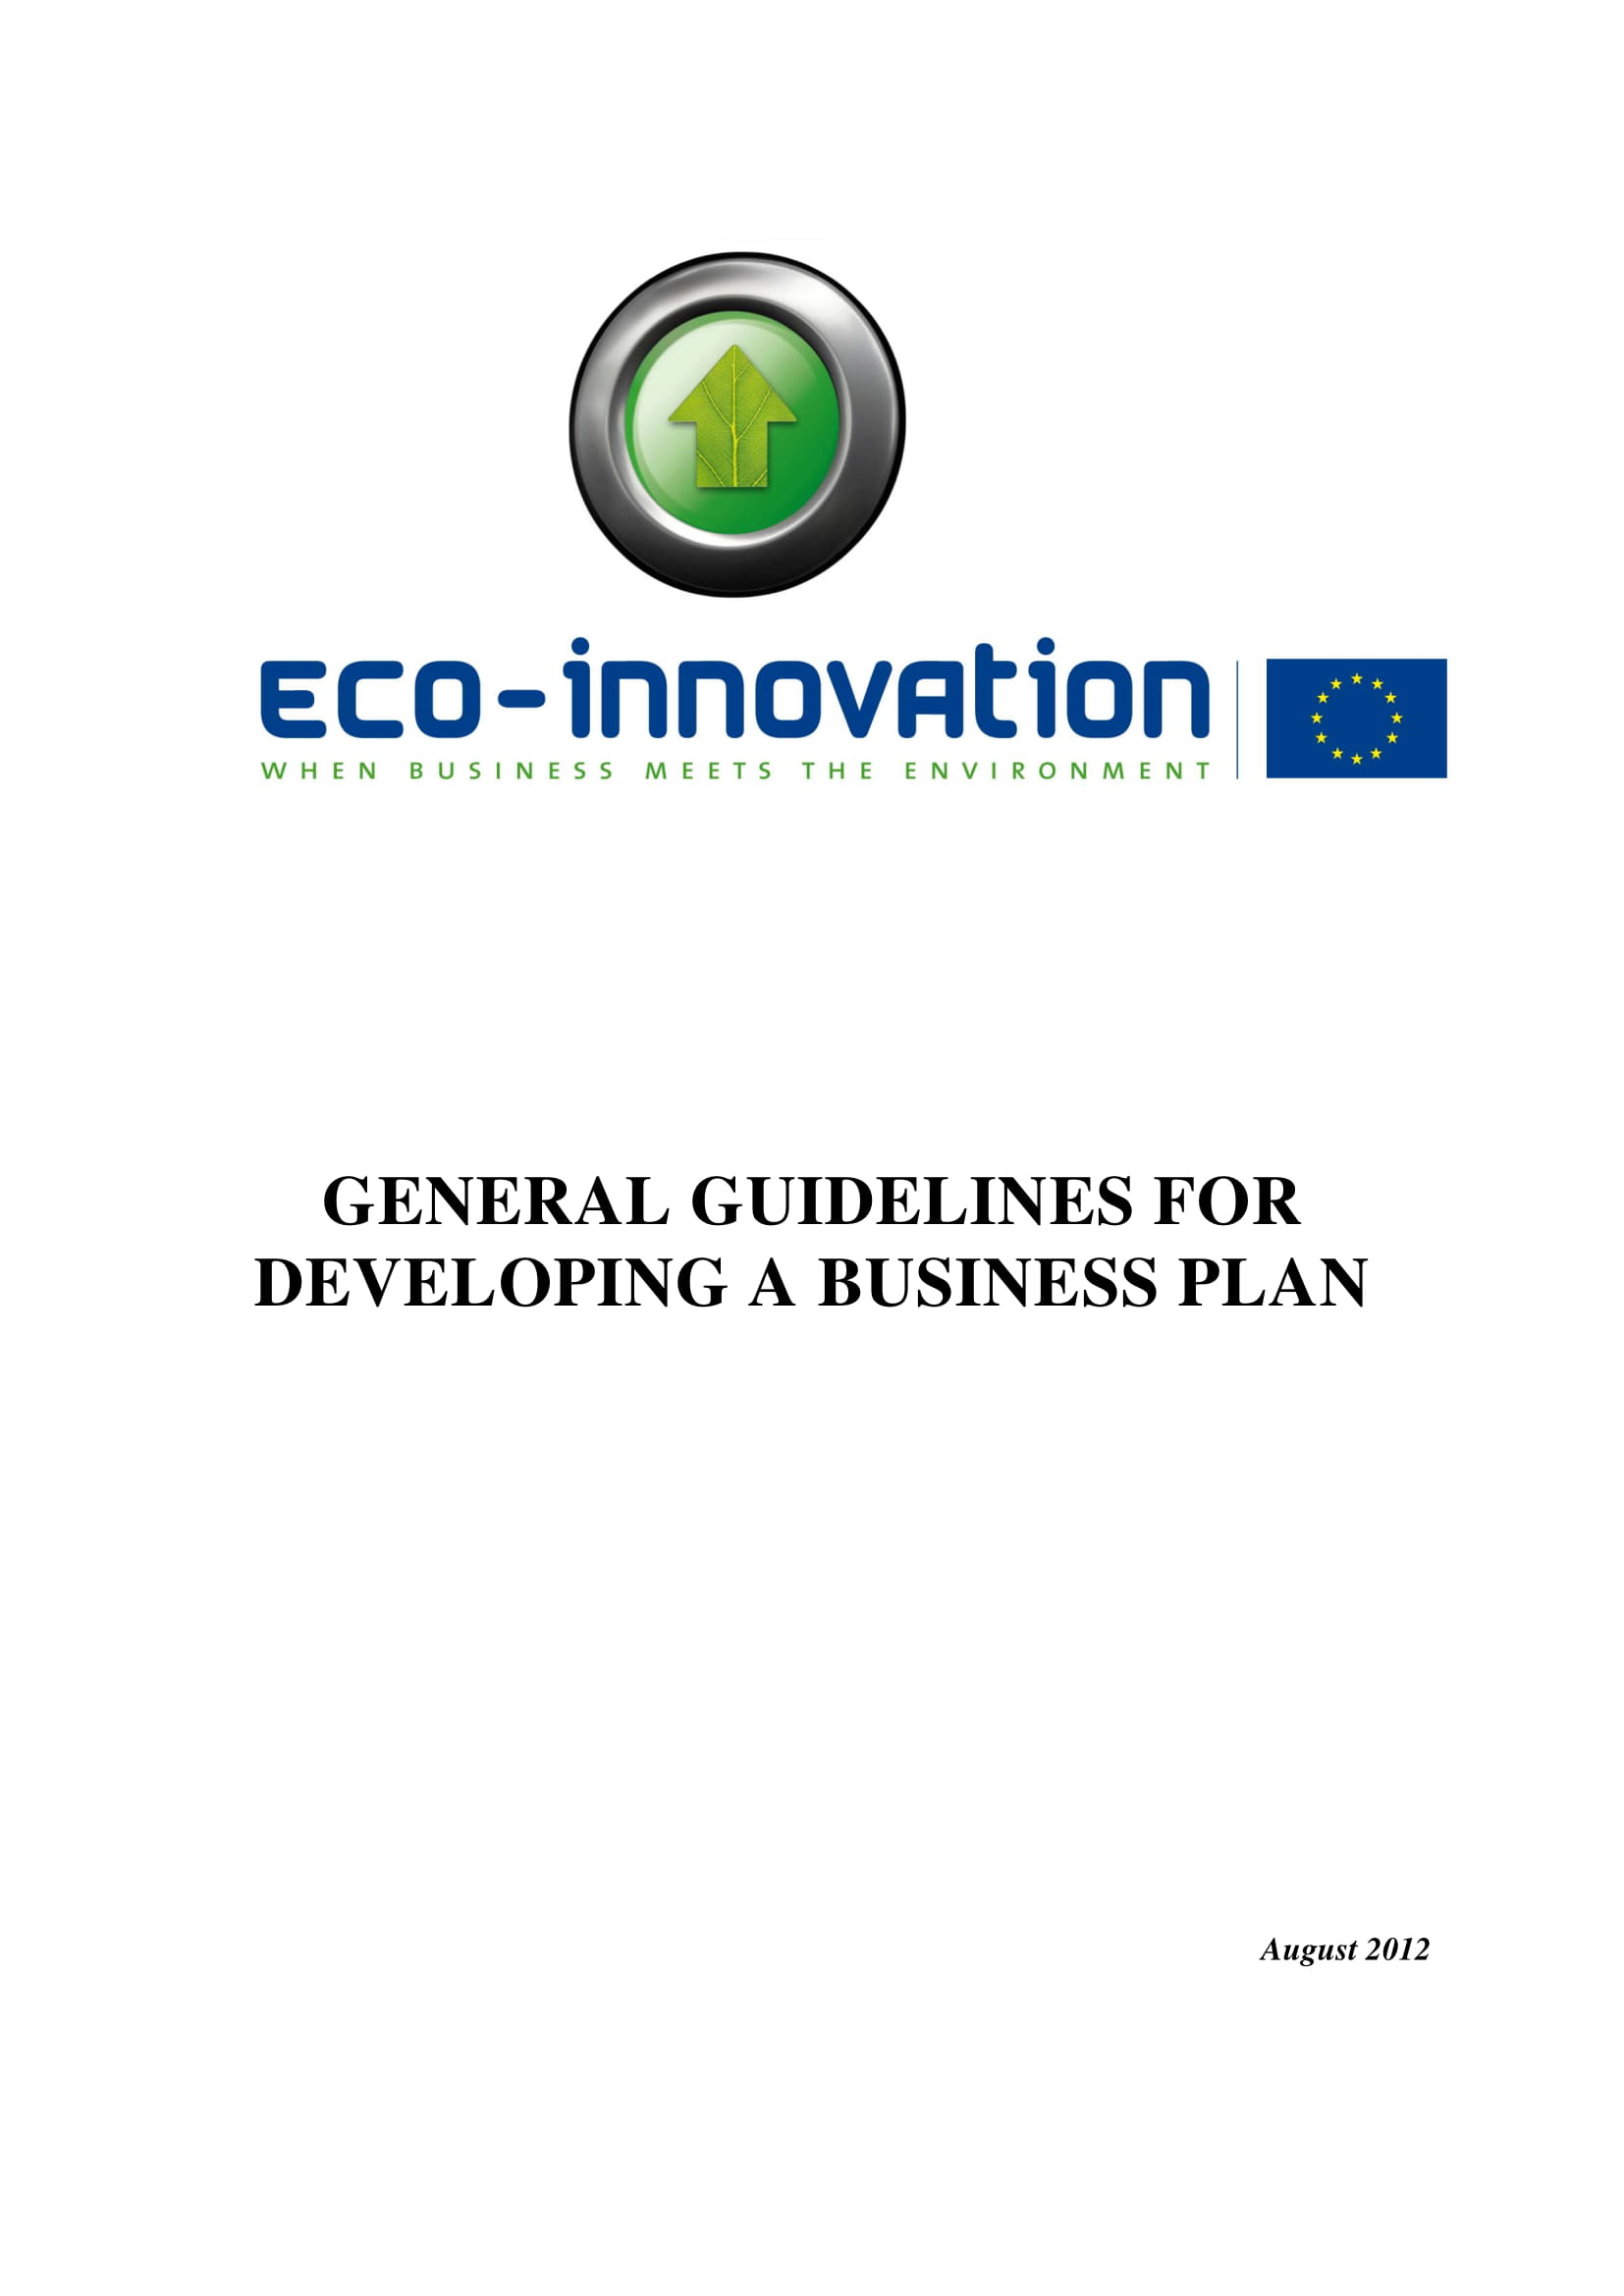 business plan development guidelines example 01